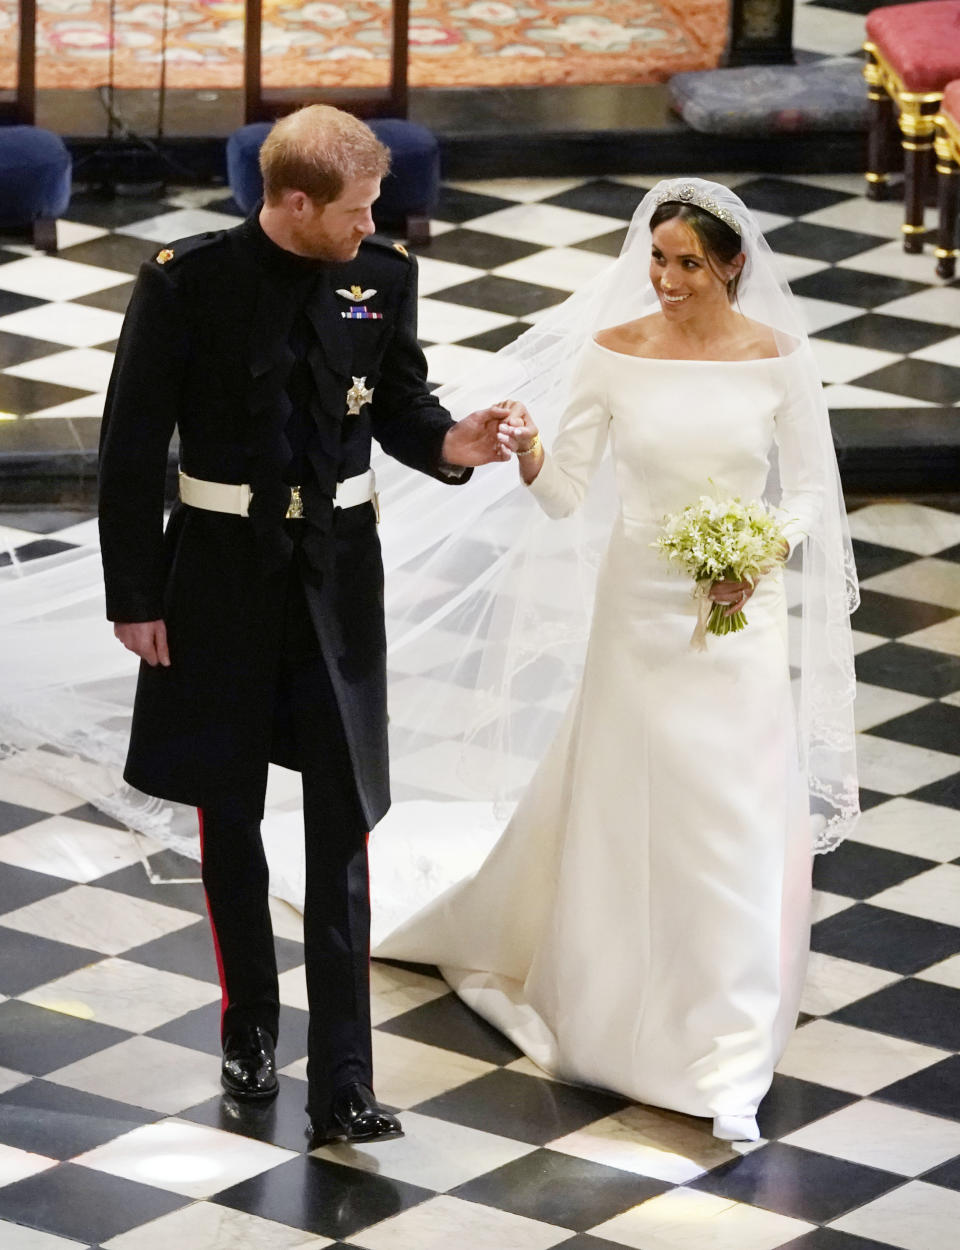 Meghan heiratete Prinz Harry am 19. Mai 2018 in Windsor (England). Foto: Getty Images